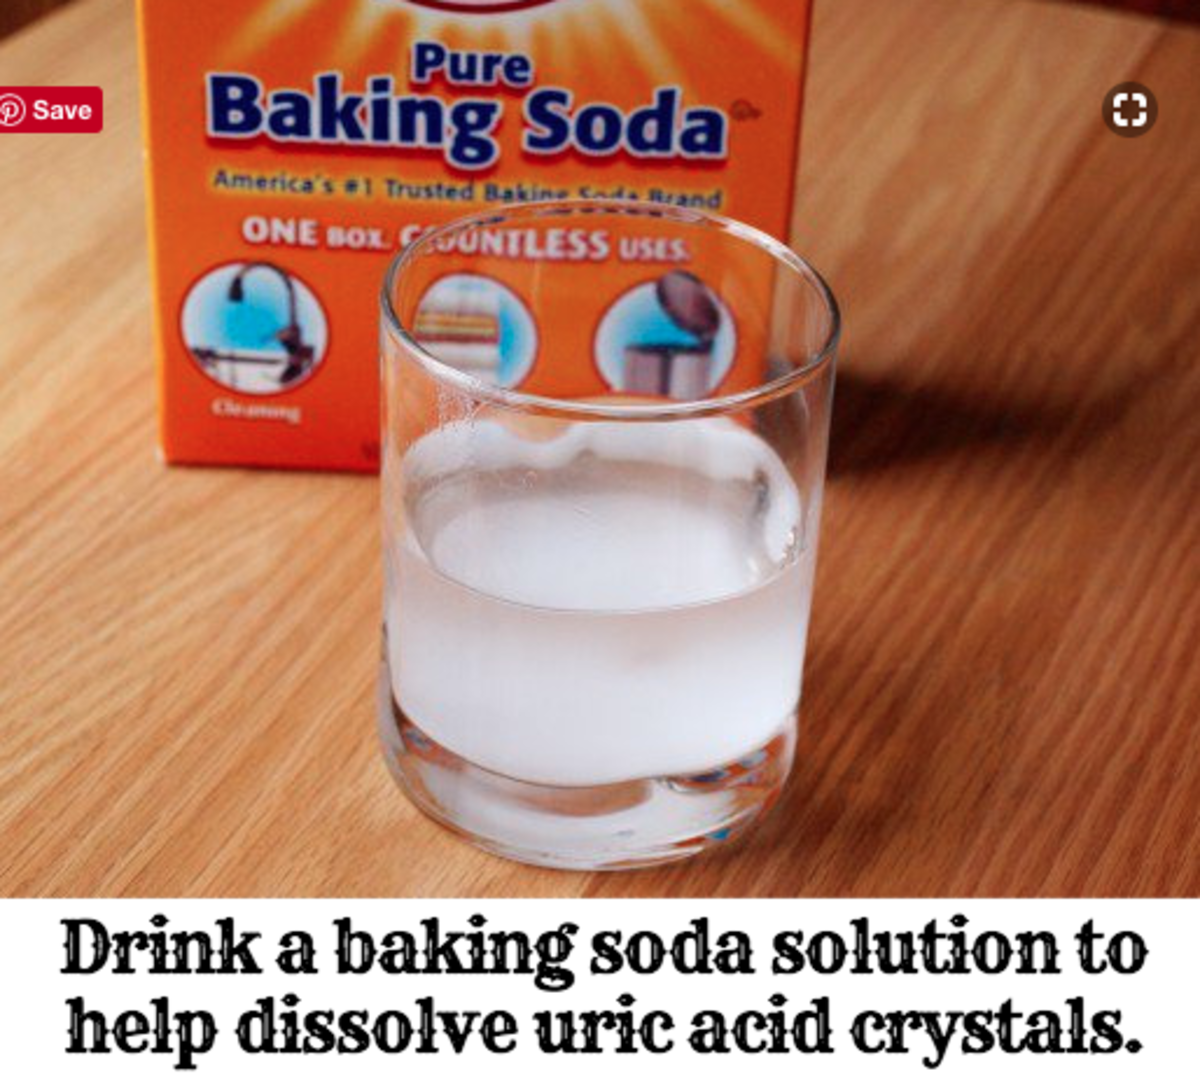 Drinking a baking soda solution may help to dissolve the uric acid crystals in your body.